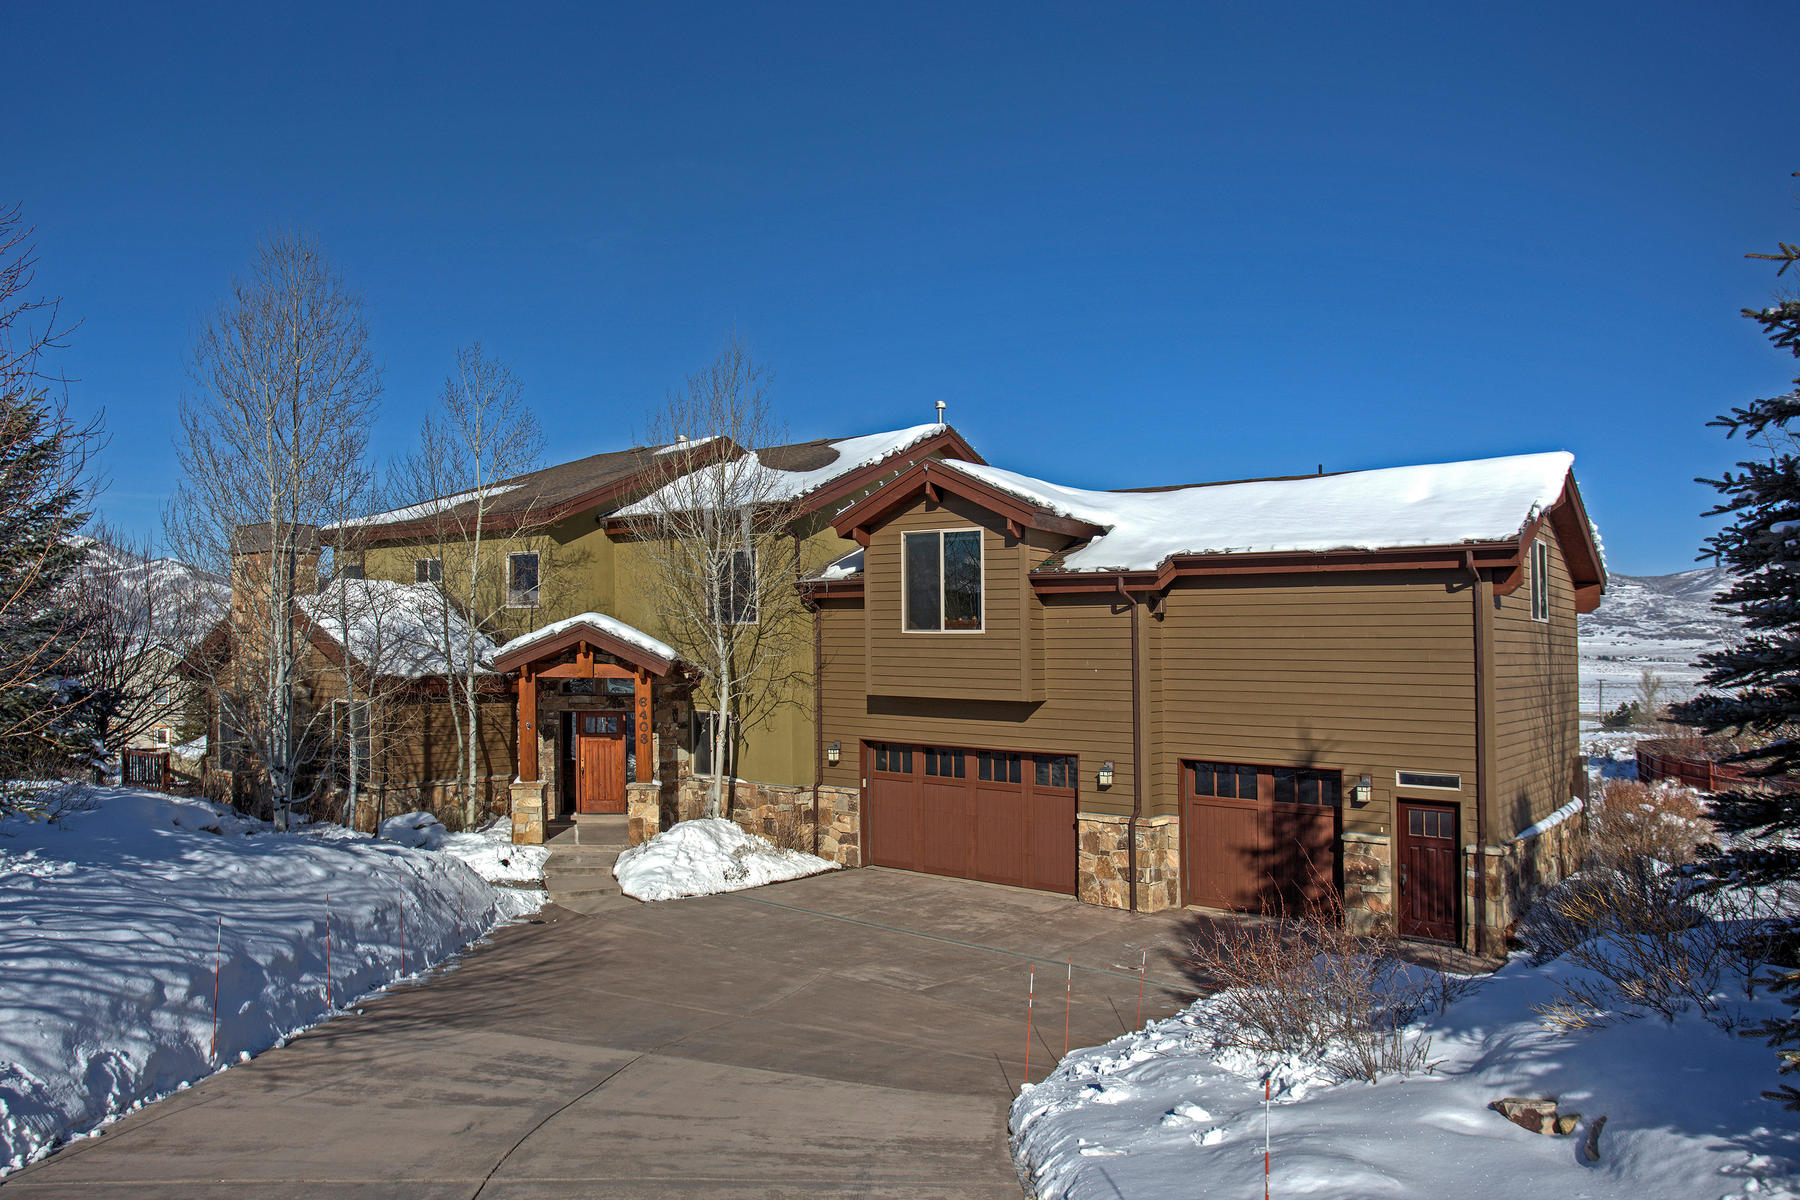 一戸建て のために 売買 アット Sophisticated Style, Spectacular Ski Resort Views 6403 N Snow View Dr Park City, ユタ, 84098 アメリカ合衆国